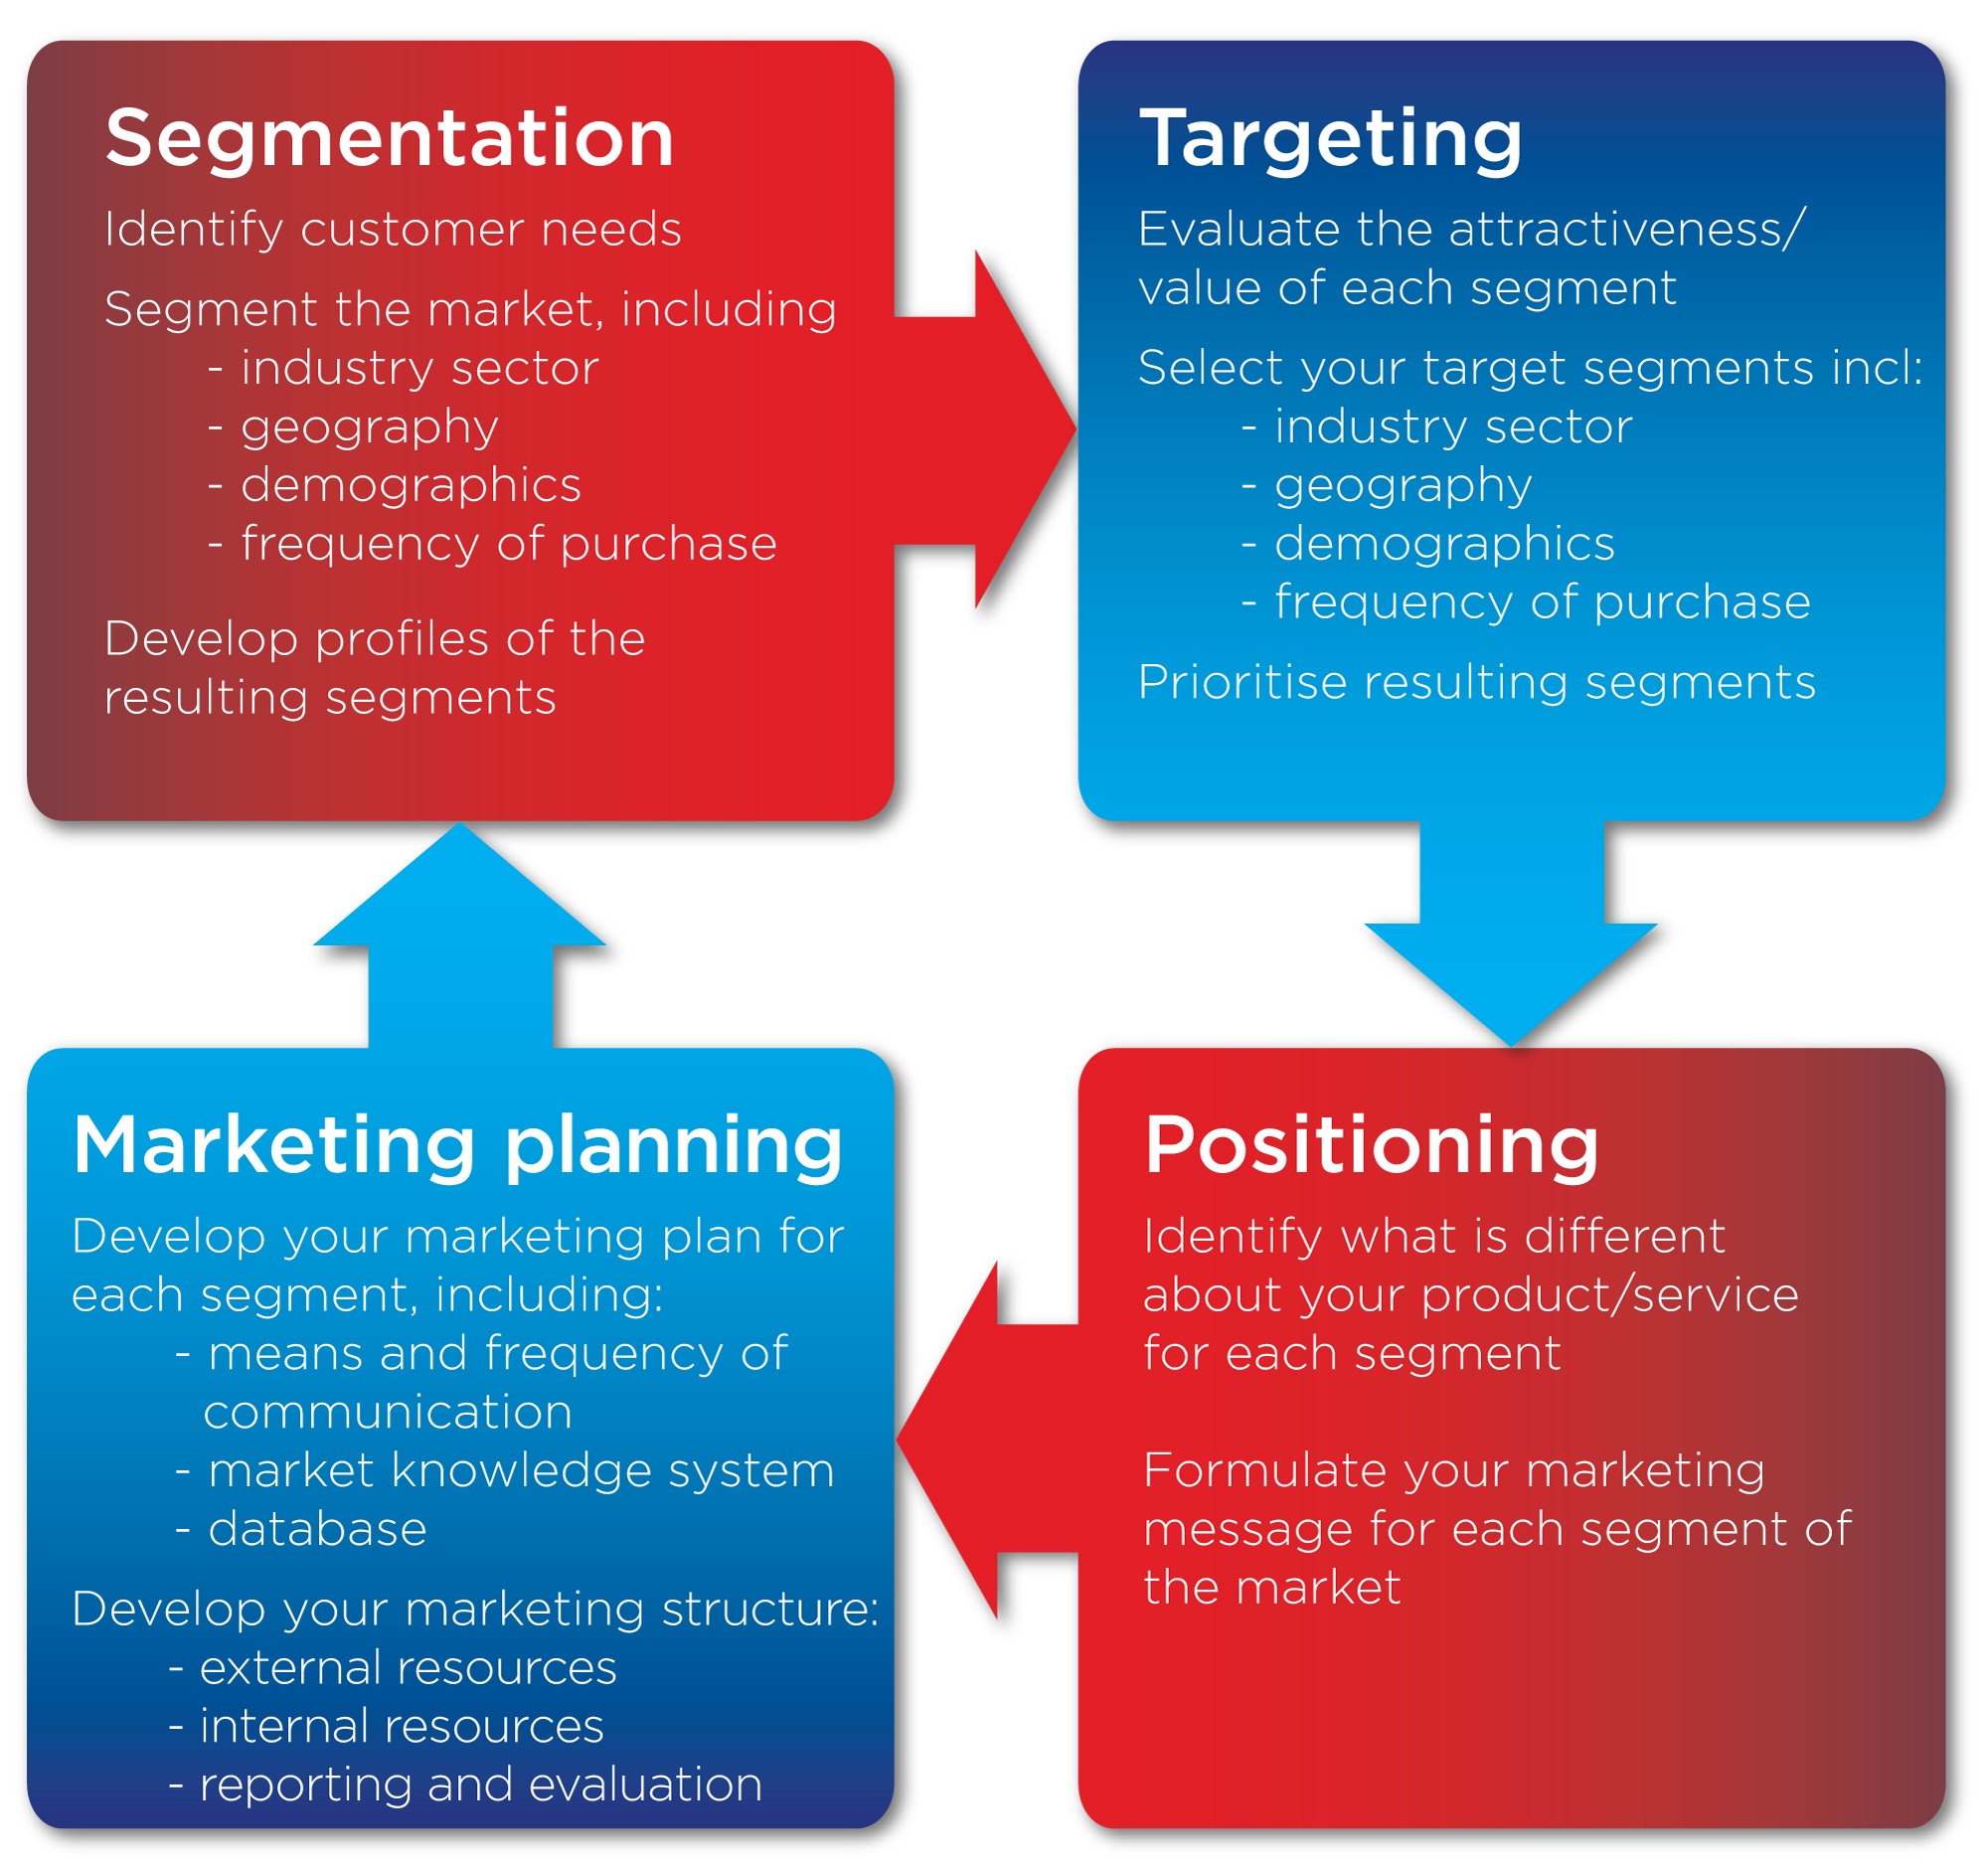 Analysis of Targeting, Segmentation & Positioning